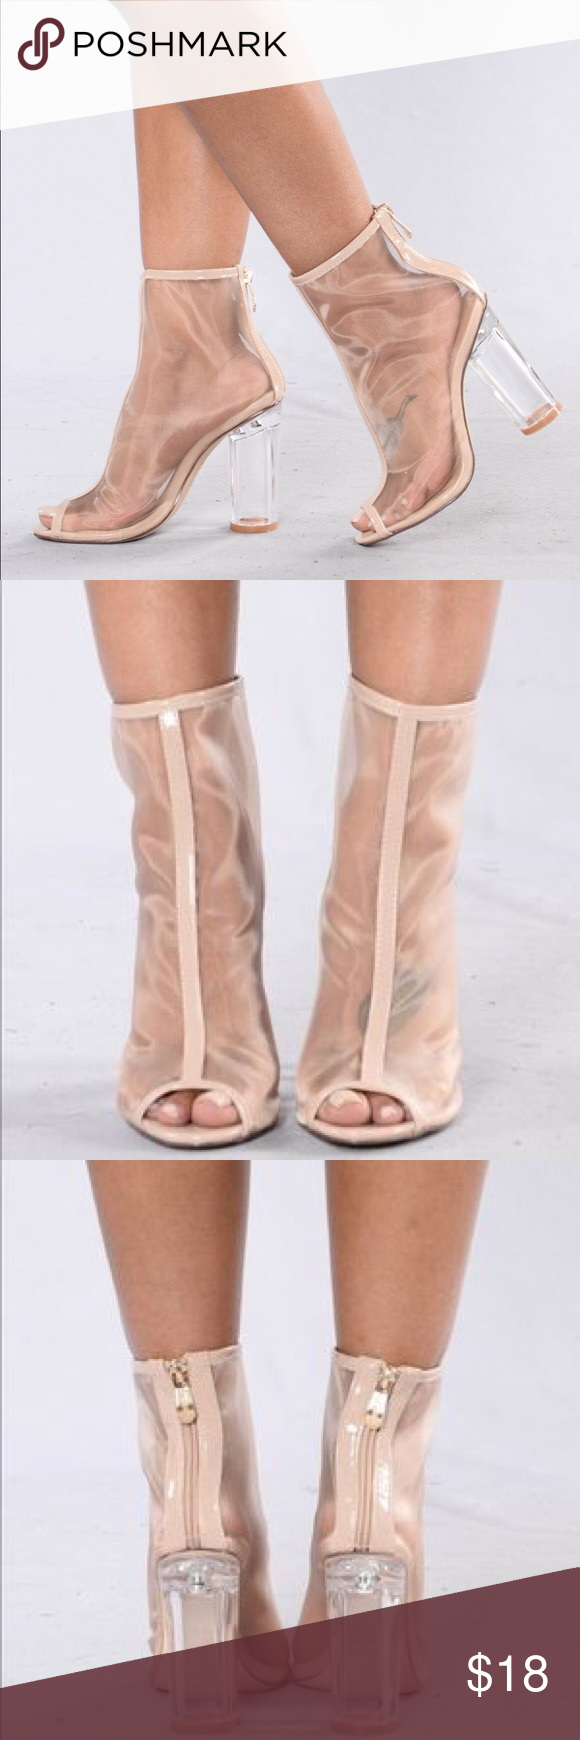 8afe92c1632 Nude Mesh Clear Block Heel Booties - Nude mesh clear block heel booties -  Used - In good condition - Difficult zipper Shoes Heels